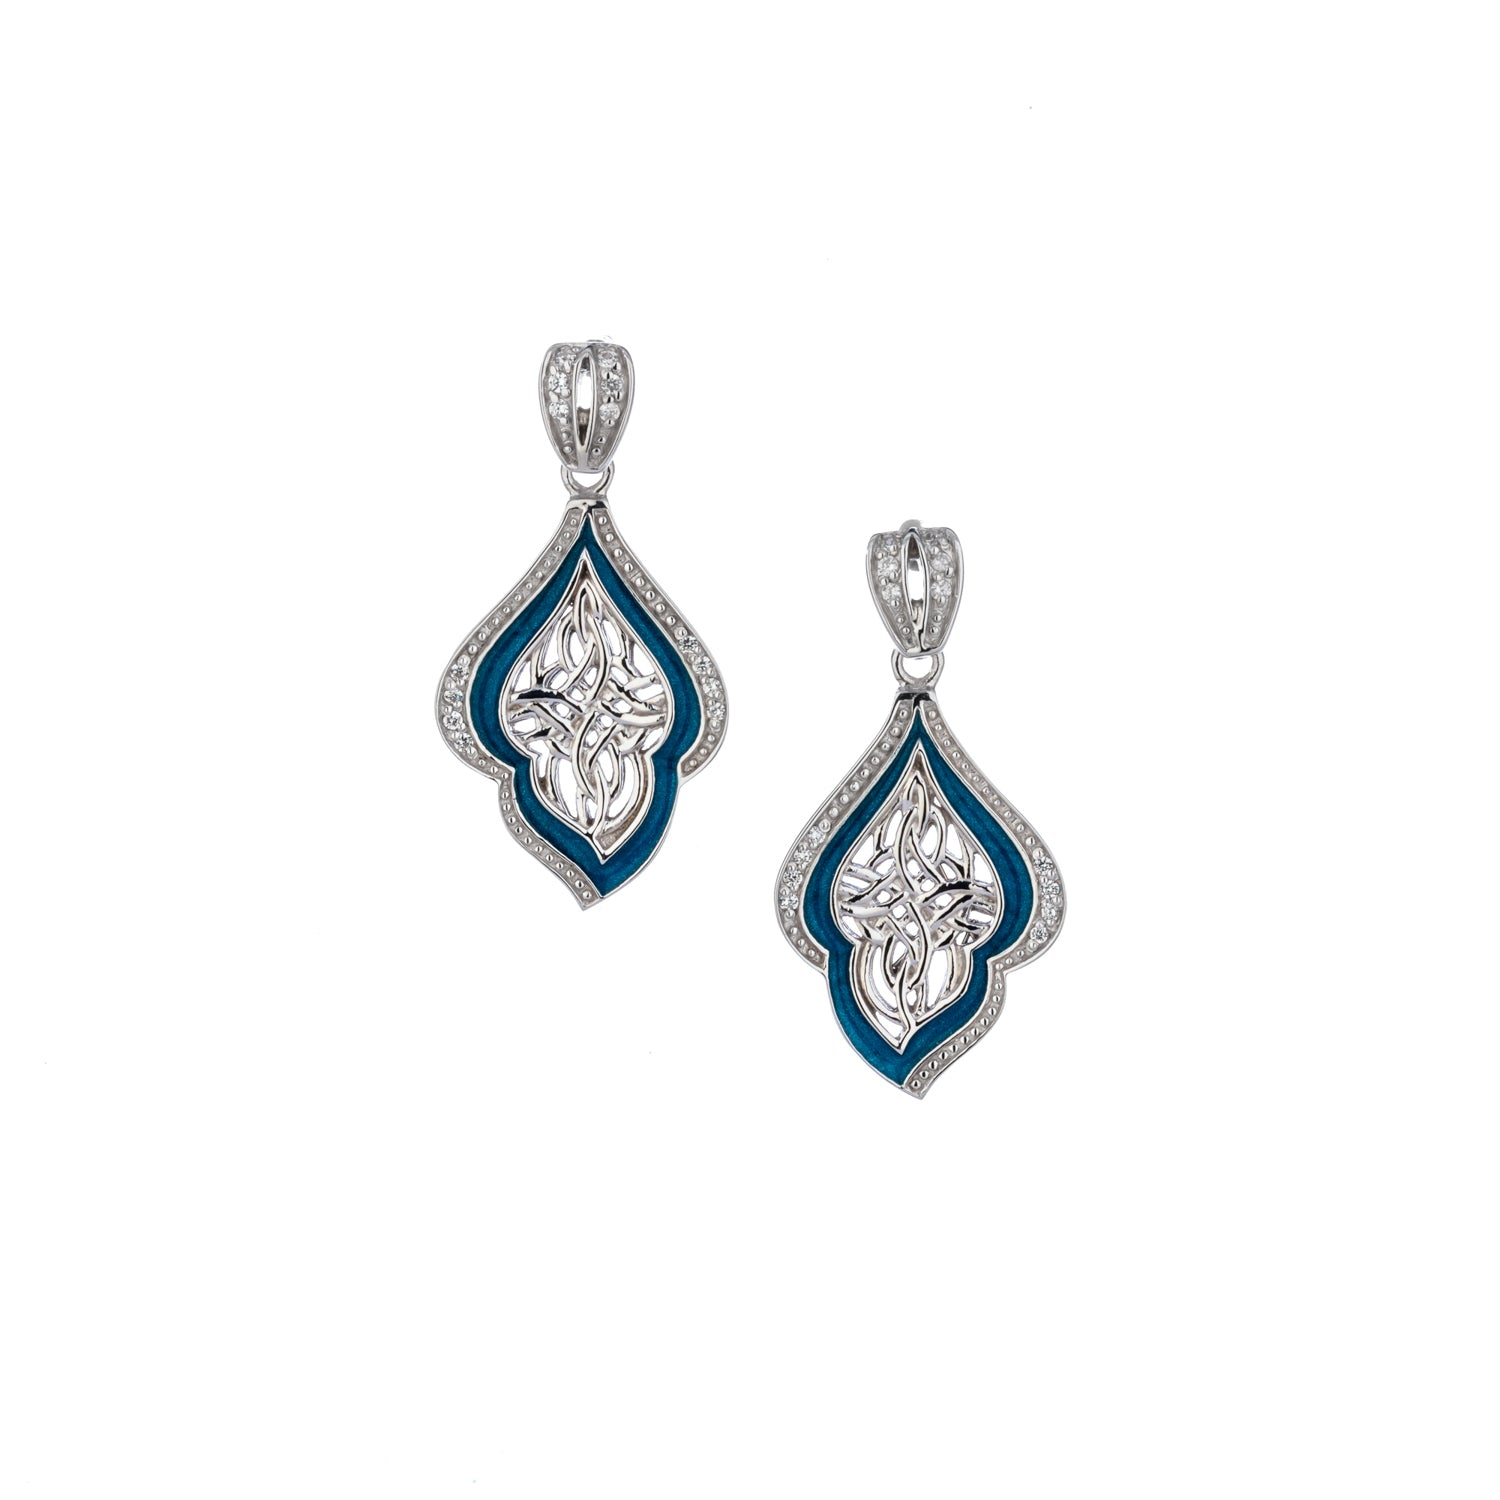 Earrings Sky Blue Enamel CZ Post Earrings from welch and company jewelers near syracuse ny